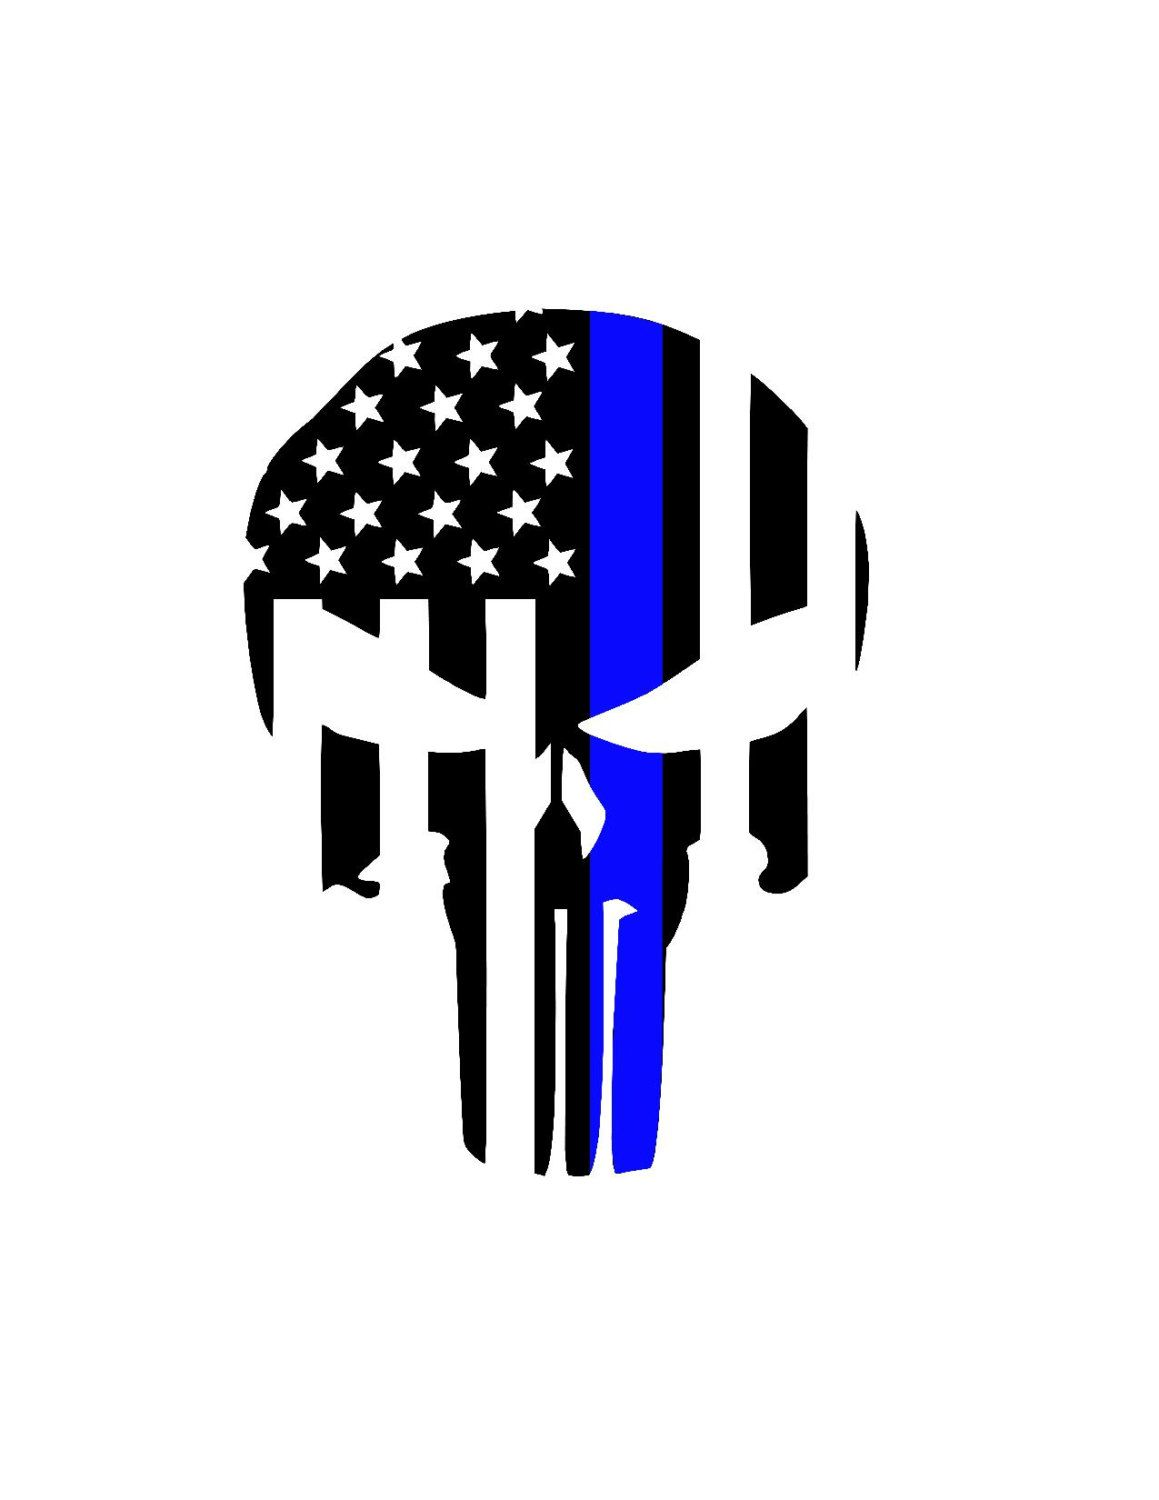 Punisher Skull Back The Blue Police Lives Matter Decal.